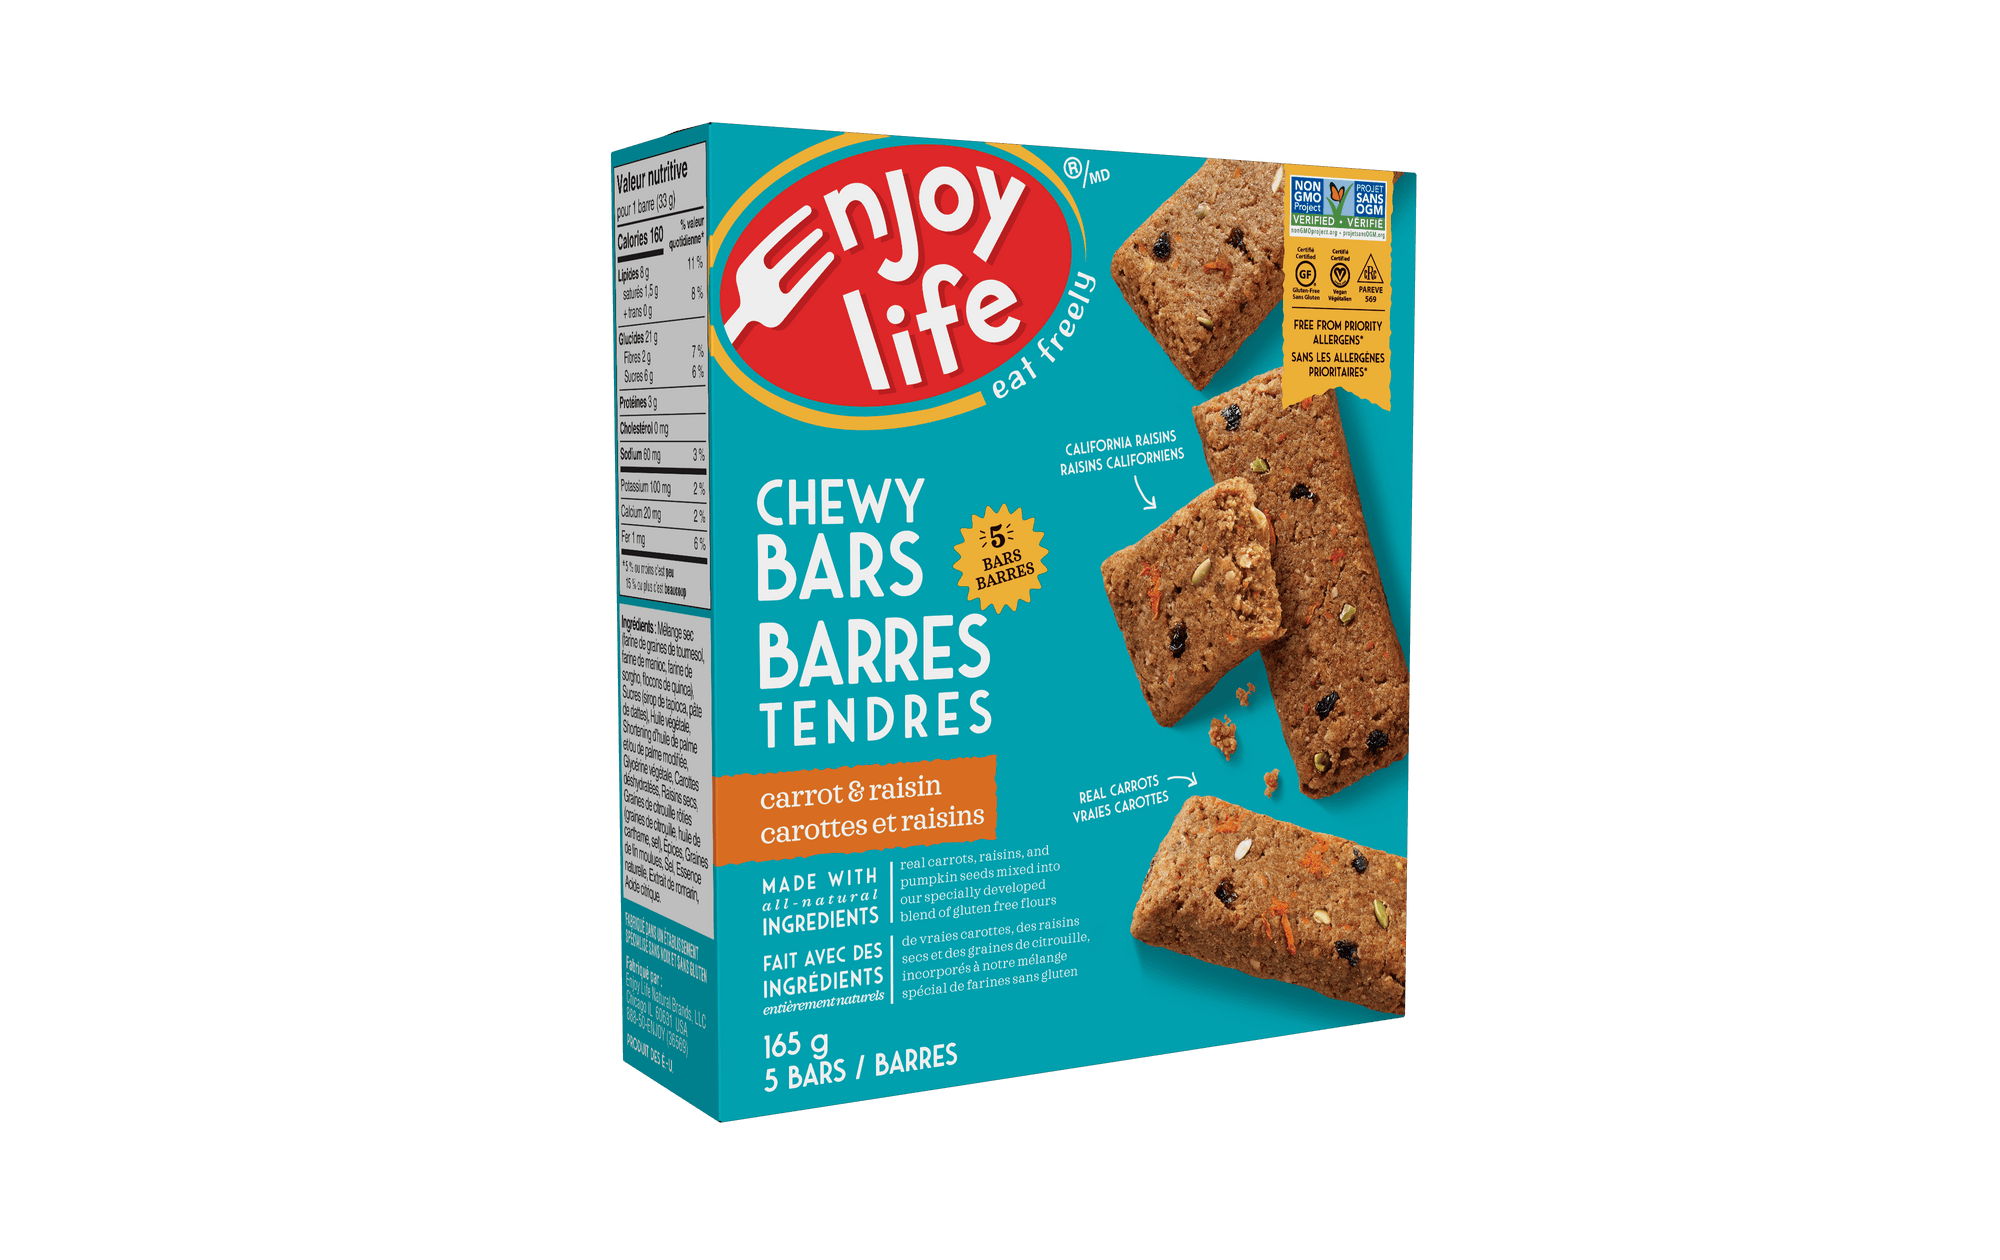 Food & Drink - Enjoy Life - Baked Chewy Bars - Carrot & Raisin - 165G